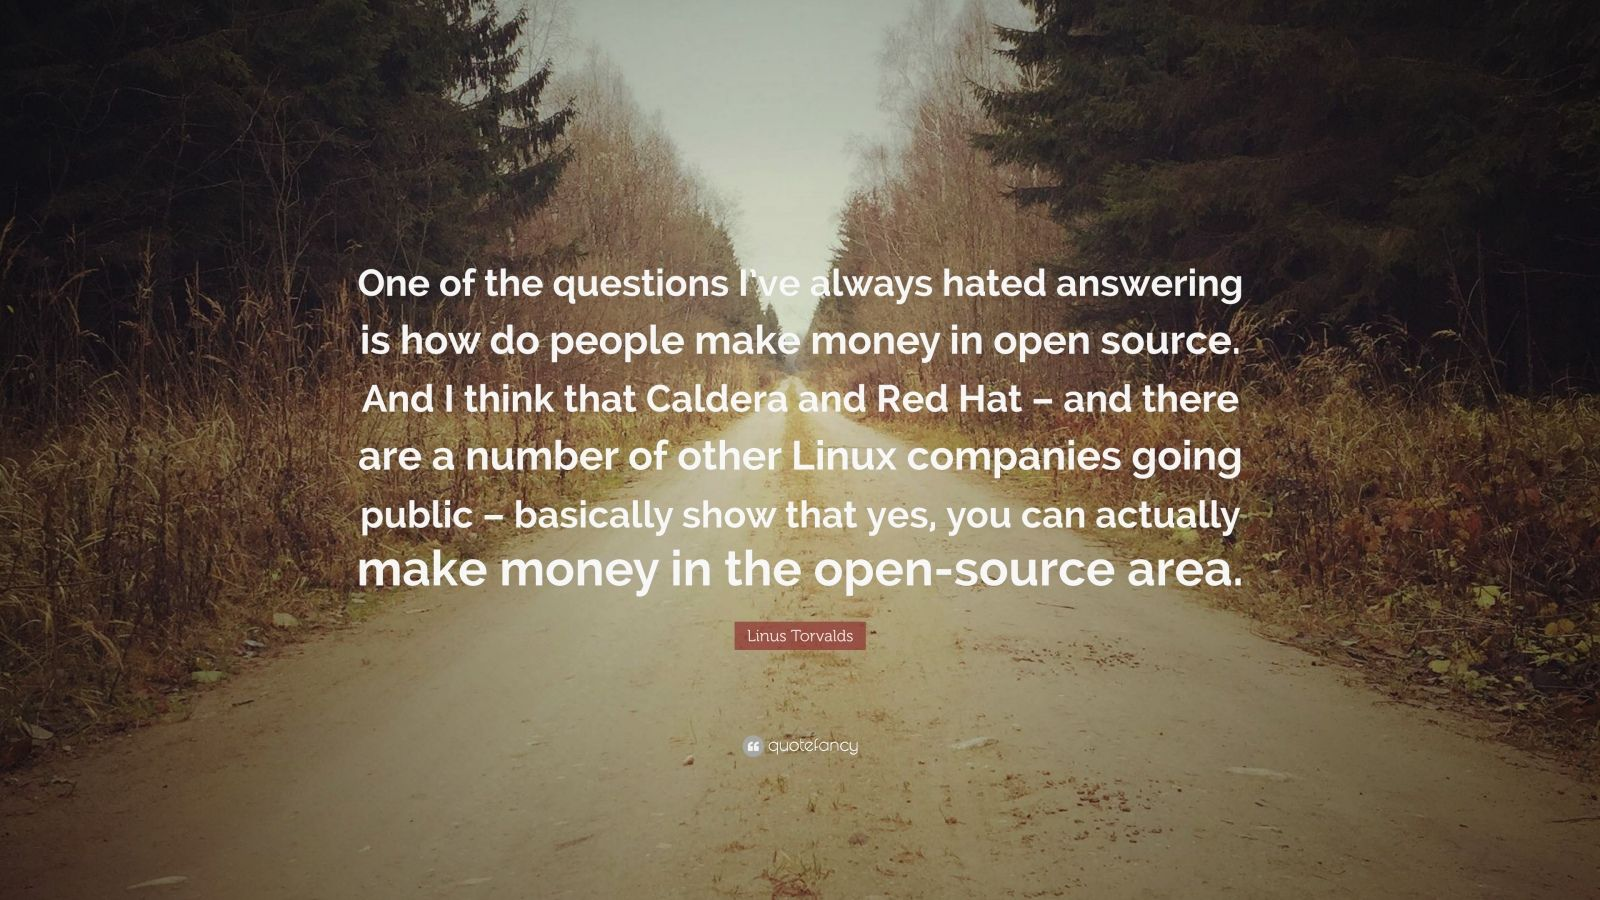 """Linus Torvalds Quote: """"One of the questions I've always hated answering is how do people make money in open source. And I think that Caldera and Red Hat – and there are a number of other Linux companies going public – basically show that yes, you can actually make money in the open-source area."""""""